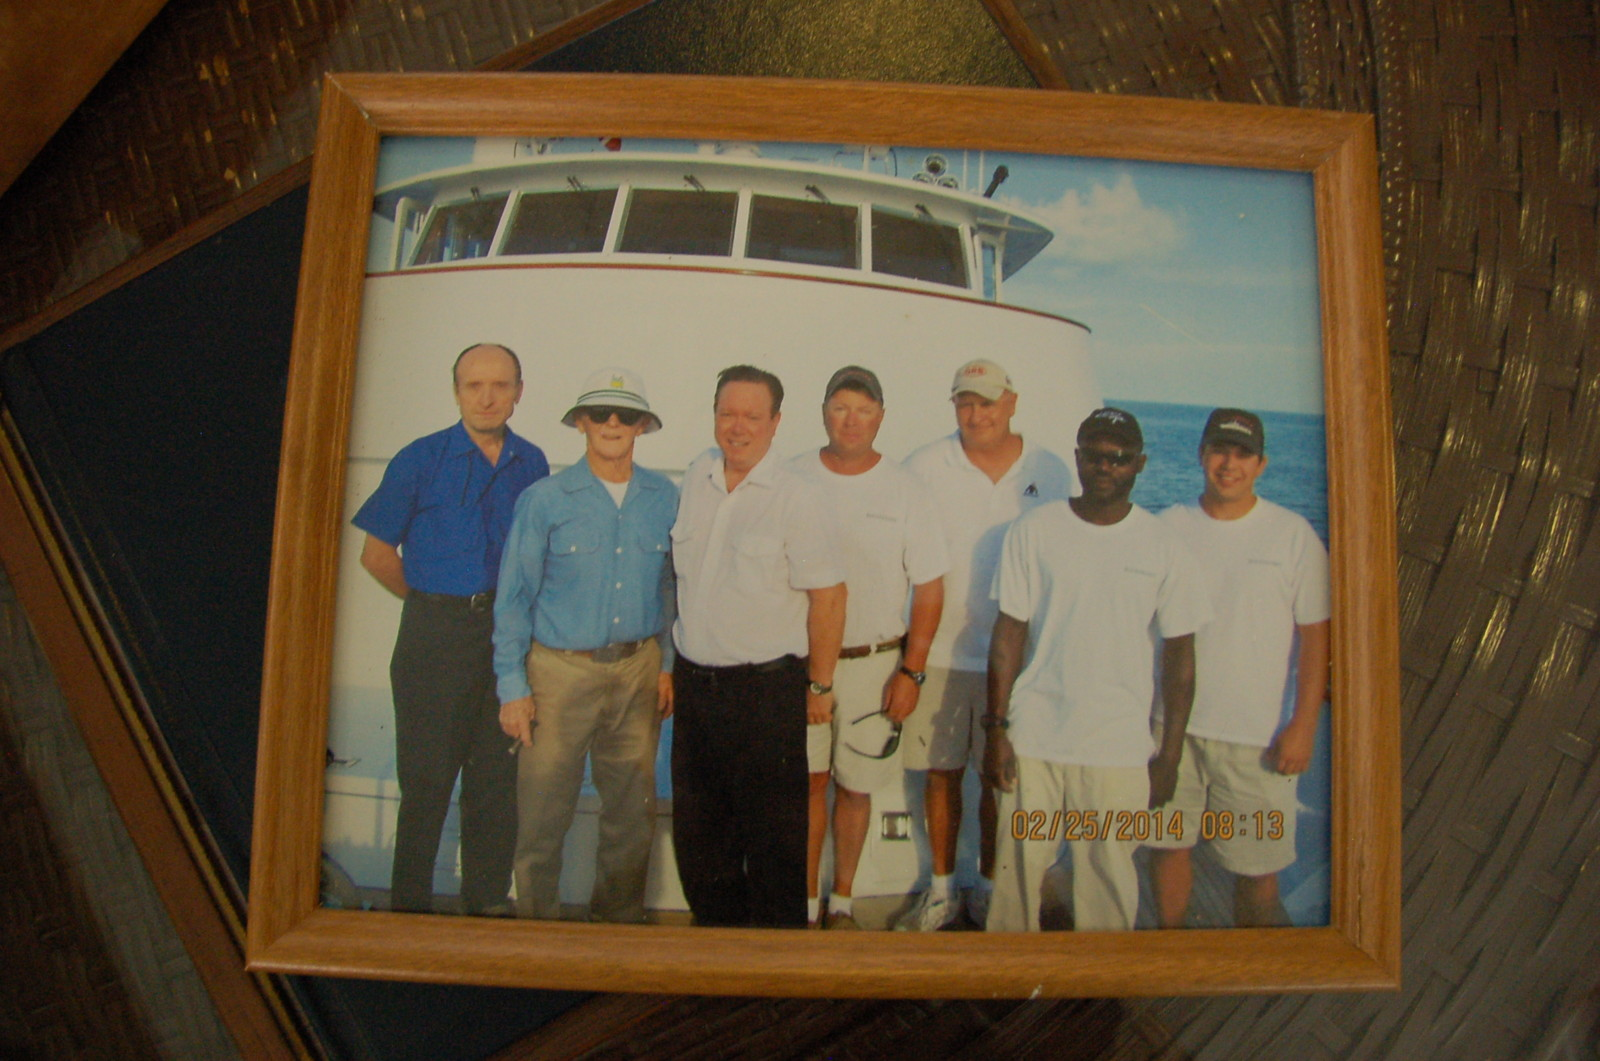 Capt. Larry Hastings shares a photo of the crew on M/Y Buckpasser. PHOTO/DORIE COX